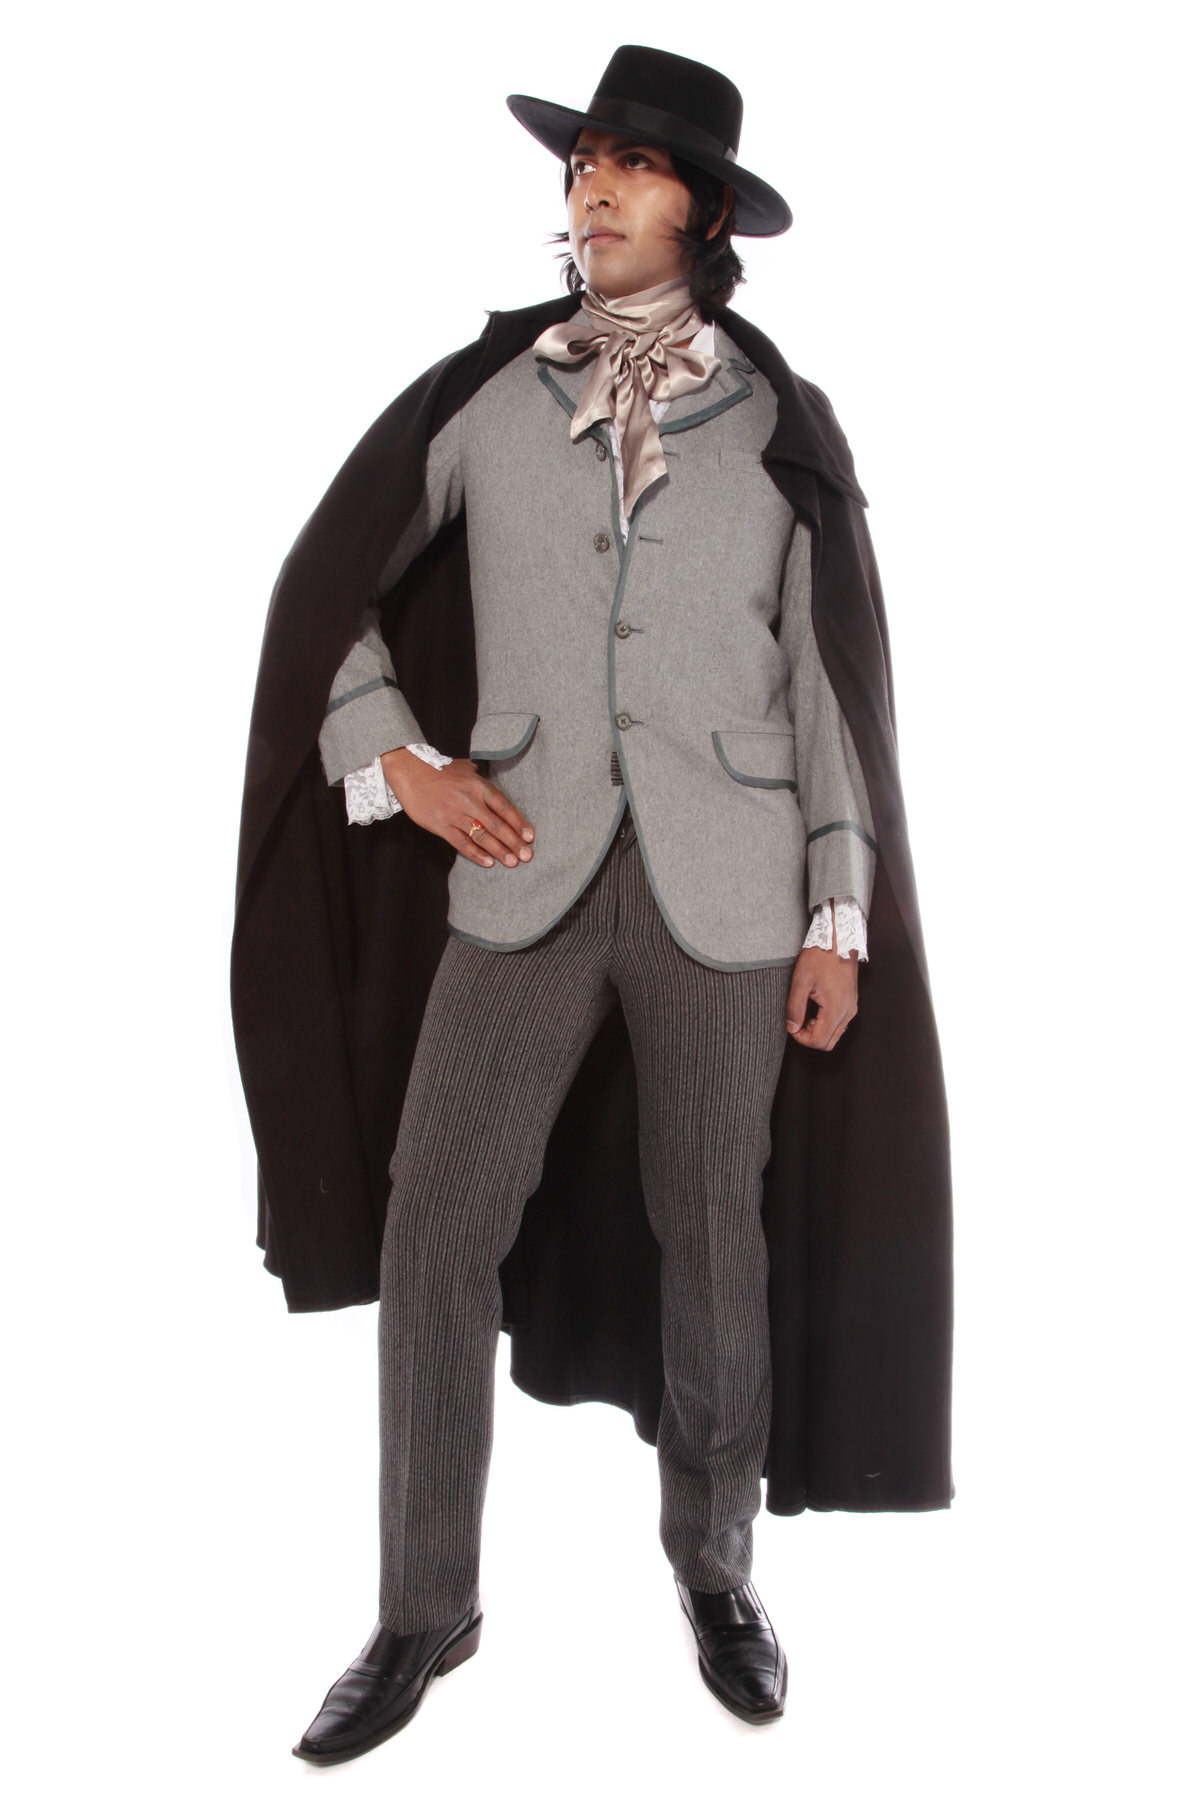 OSCAR WILDE FLAMBOYANT COSTUME W FANCY FRILLY SHIRT